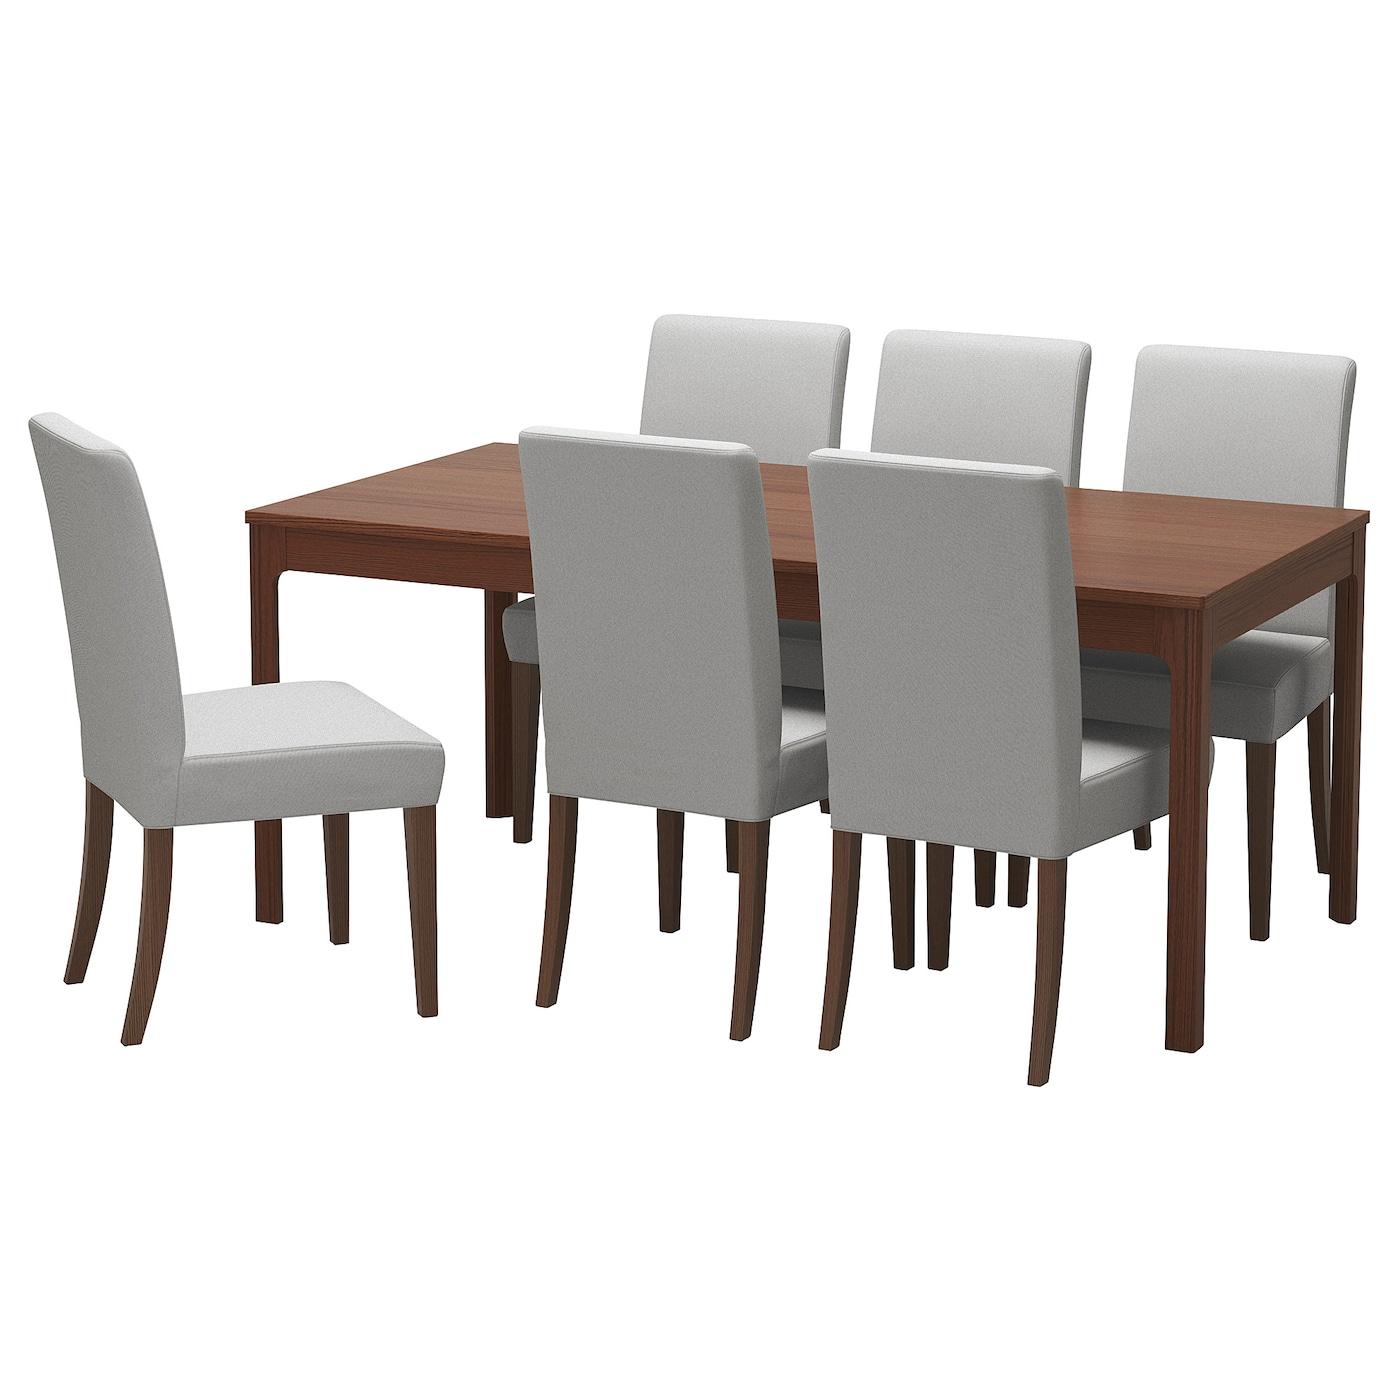 IKEA HENRIKSDAL/EKEDALEN table and 6 chairs